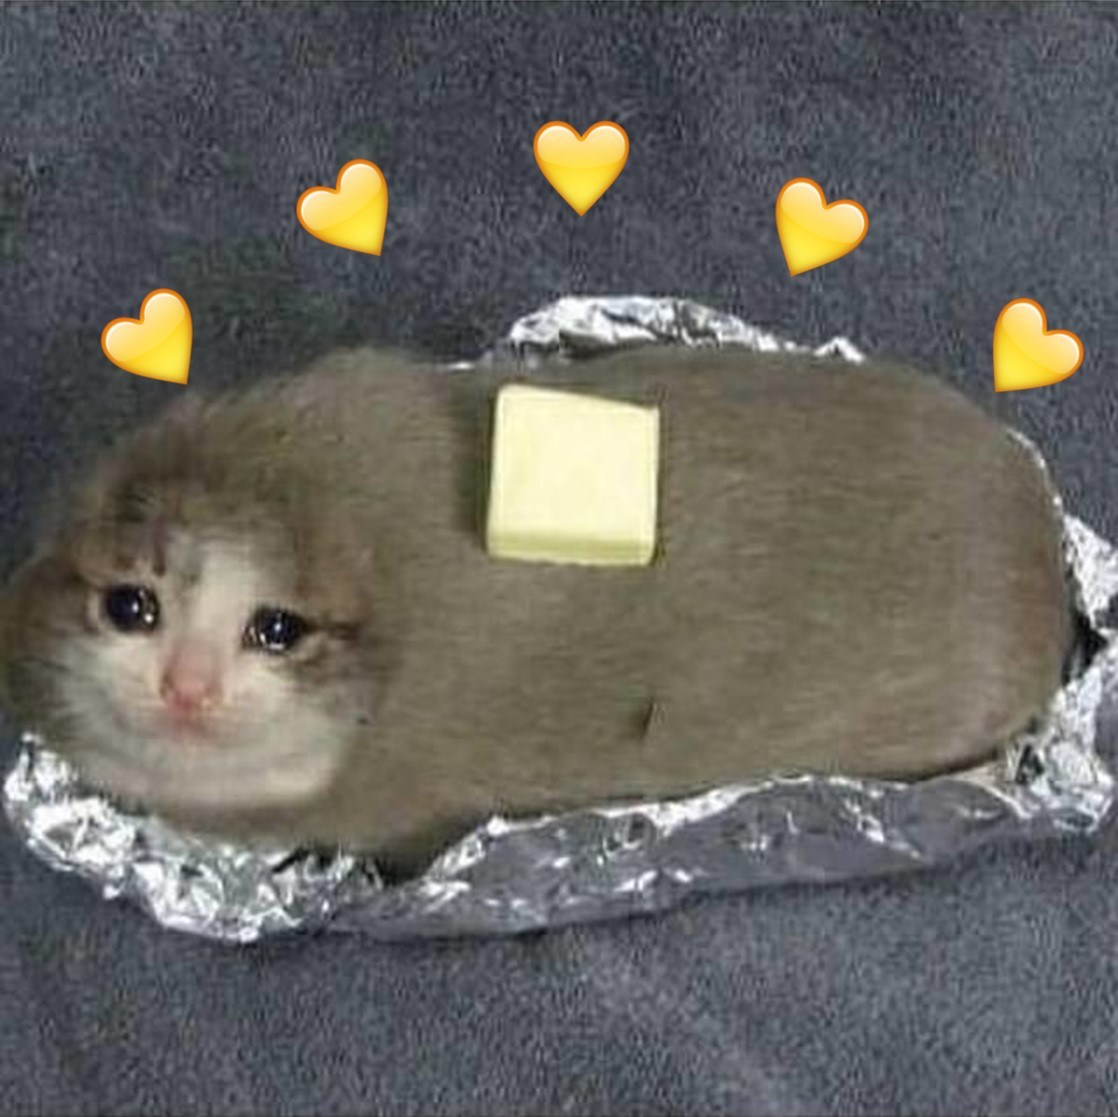 Sadboi Cat Kttens Memes And Wholesome Memes Image 6460800 On